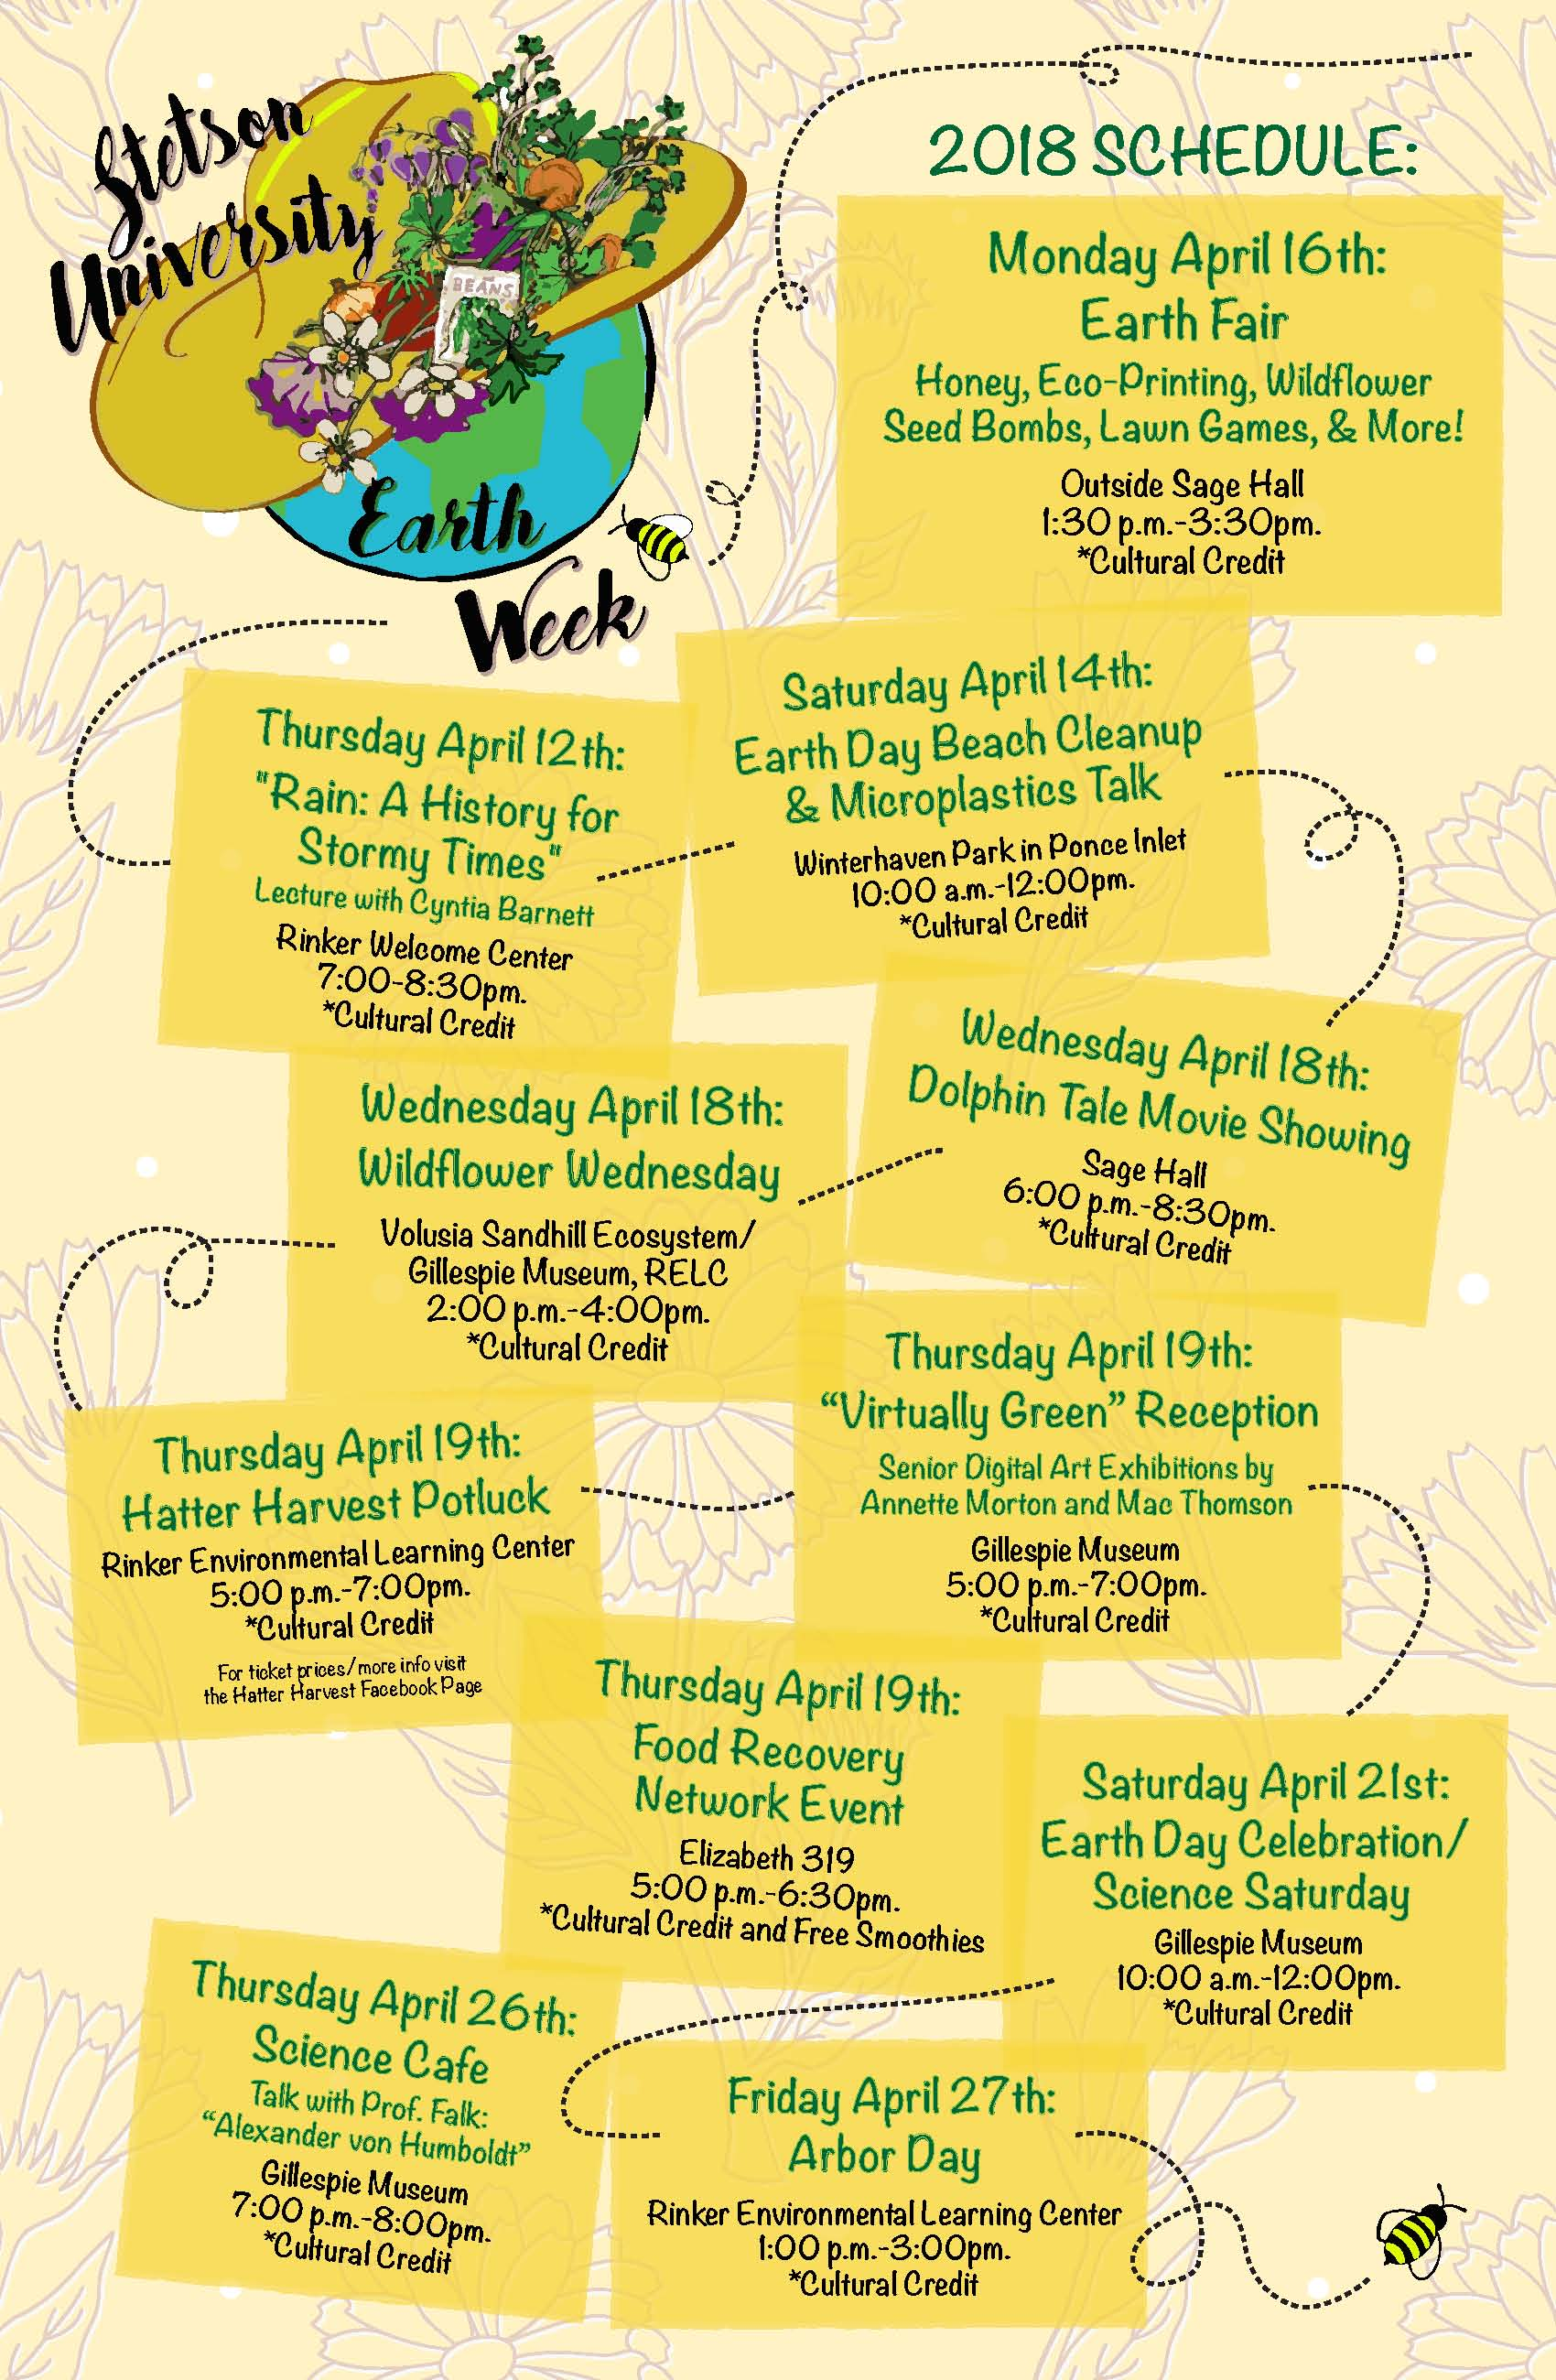 4595c930 Come out and enjoy Earth Week at the Gillespie Museum. Earth Day has been  celebrated on the Stetson University campus since its inception on April  22, 1970.